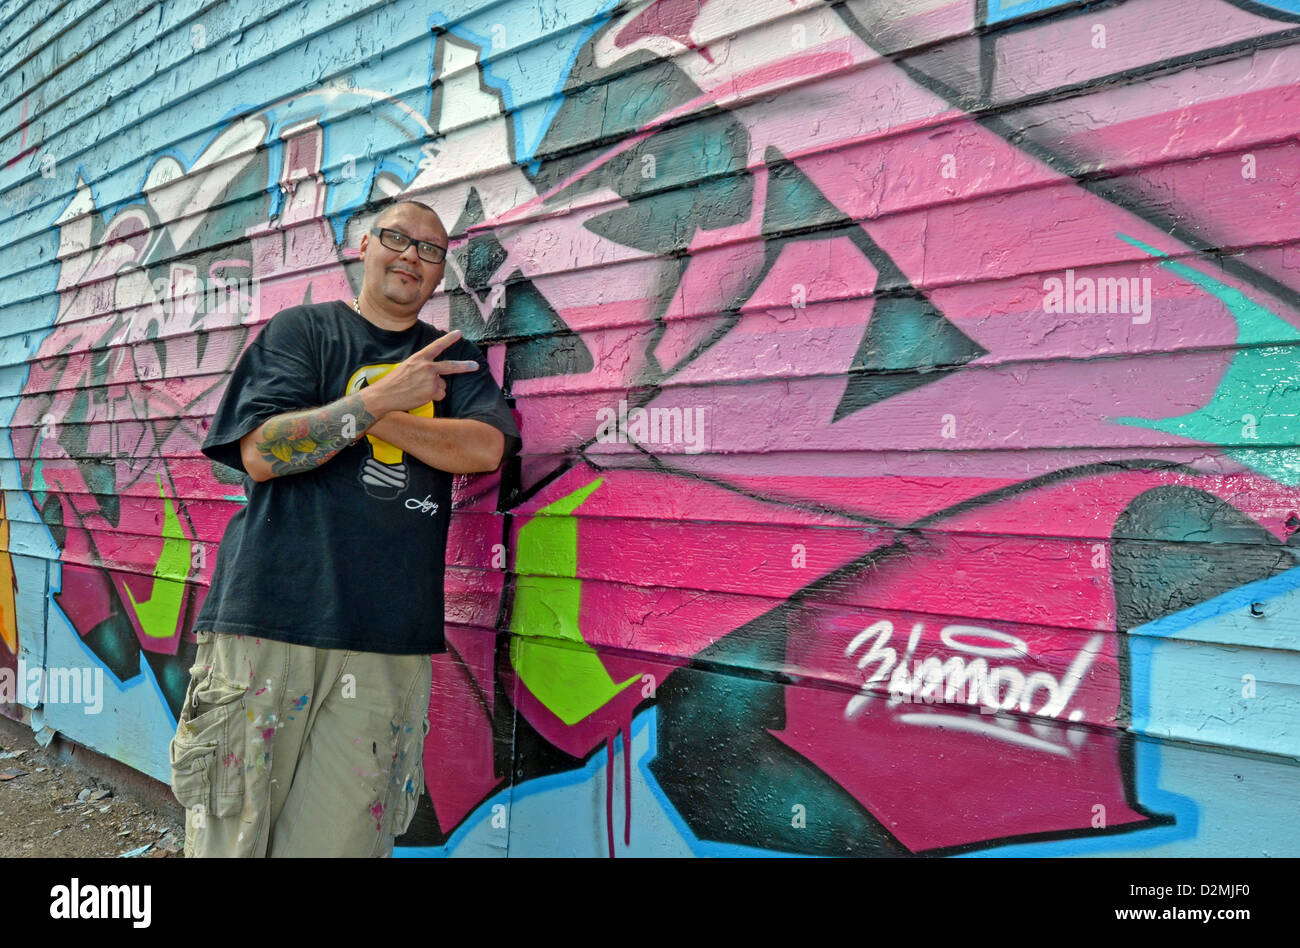 Graffiti wall in queens ny - Graffiti Artist Luis Zimad Lamboy In Front Of One Of His Walls At 5 Pointz In